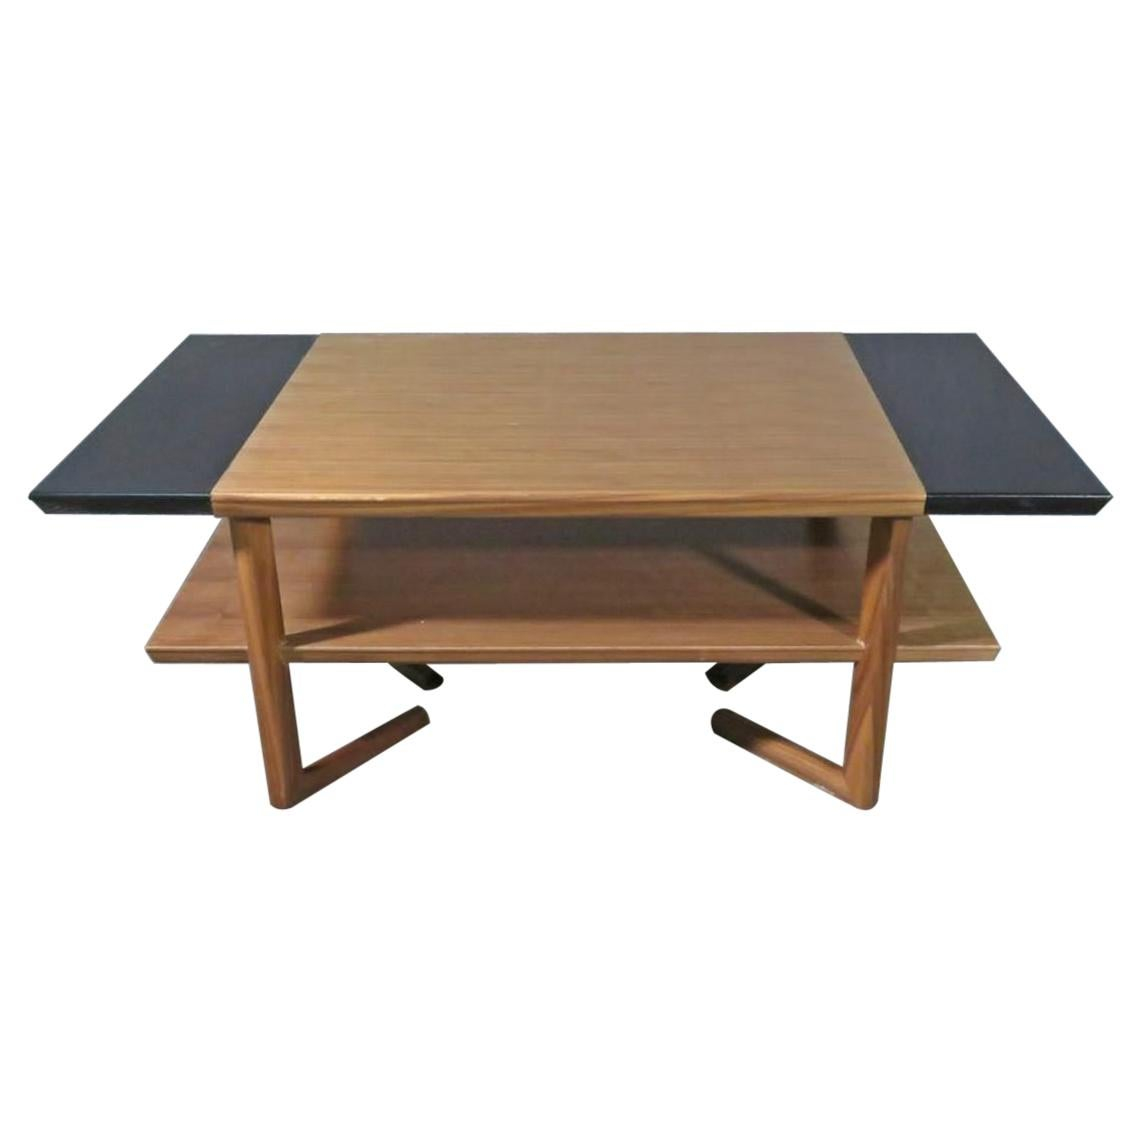 Mid-Century Modern Two-Tiered Coffee Table